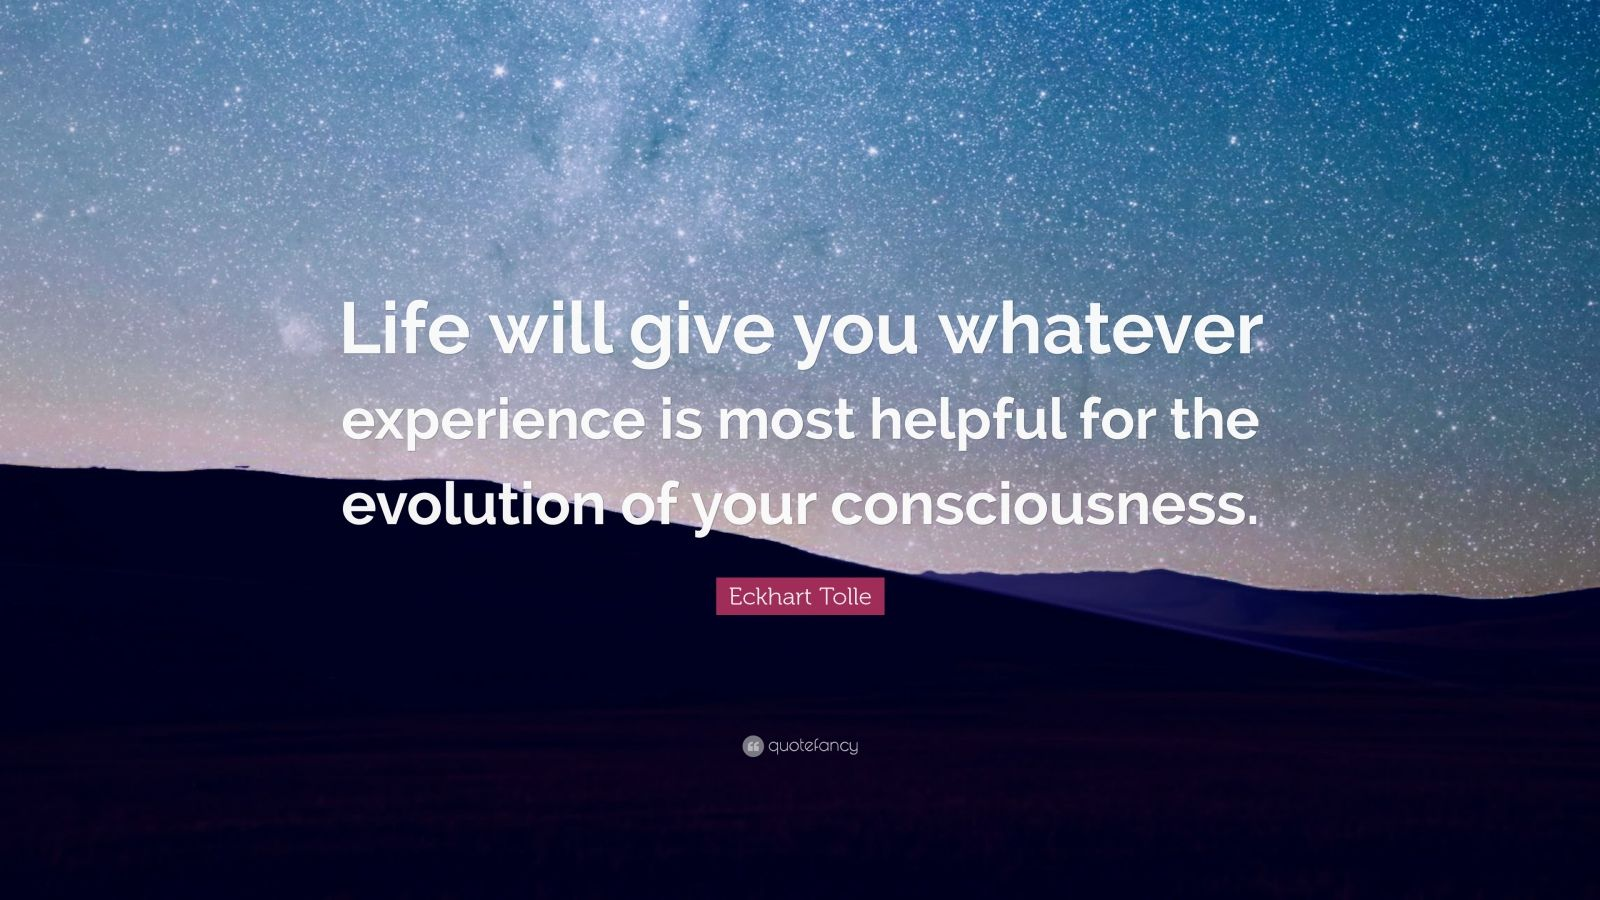 eckhart tolle quote life 1600x900